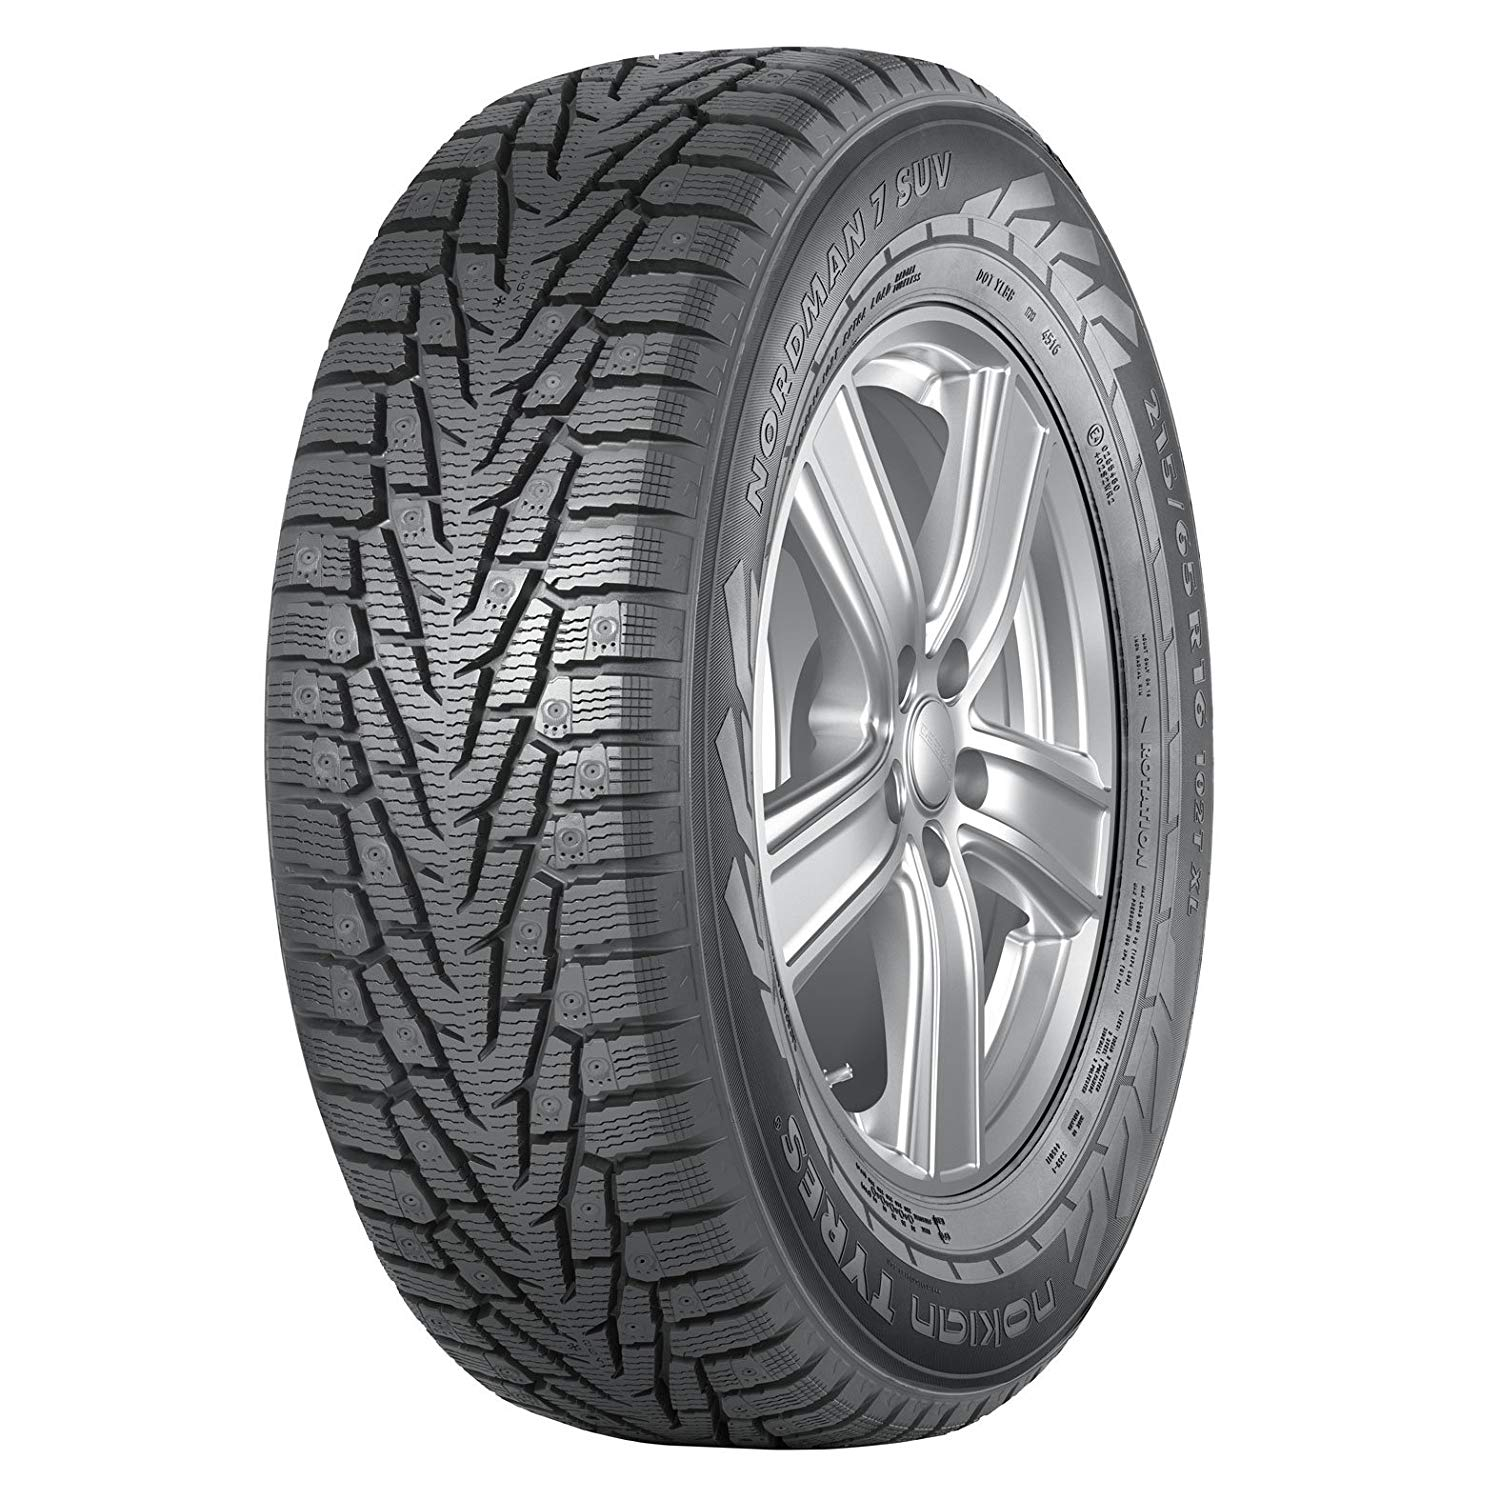 Gomme Nuove Nokian 205/55 R16 94T NORDM7 STUDDED M+S pneumatici nuovi Invernale